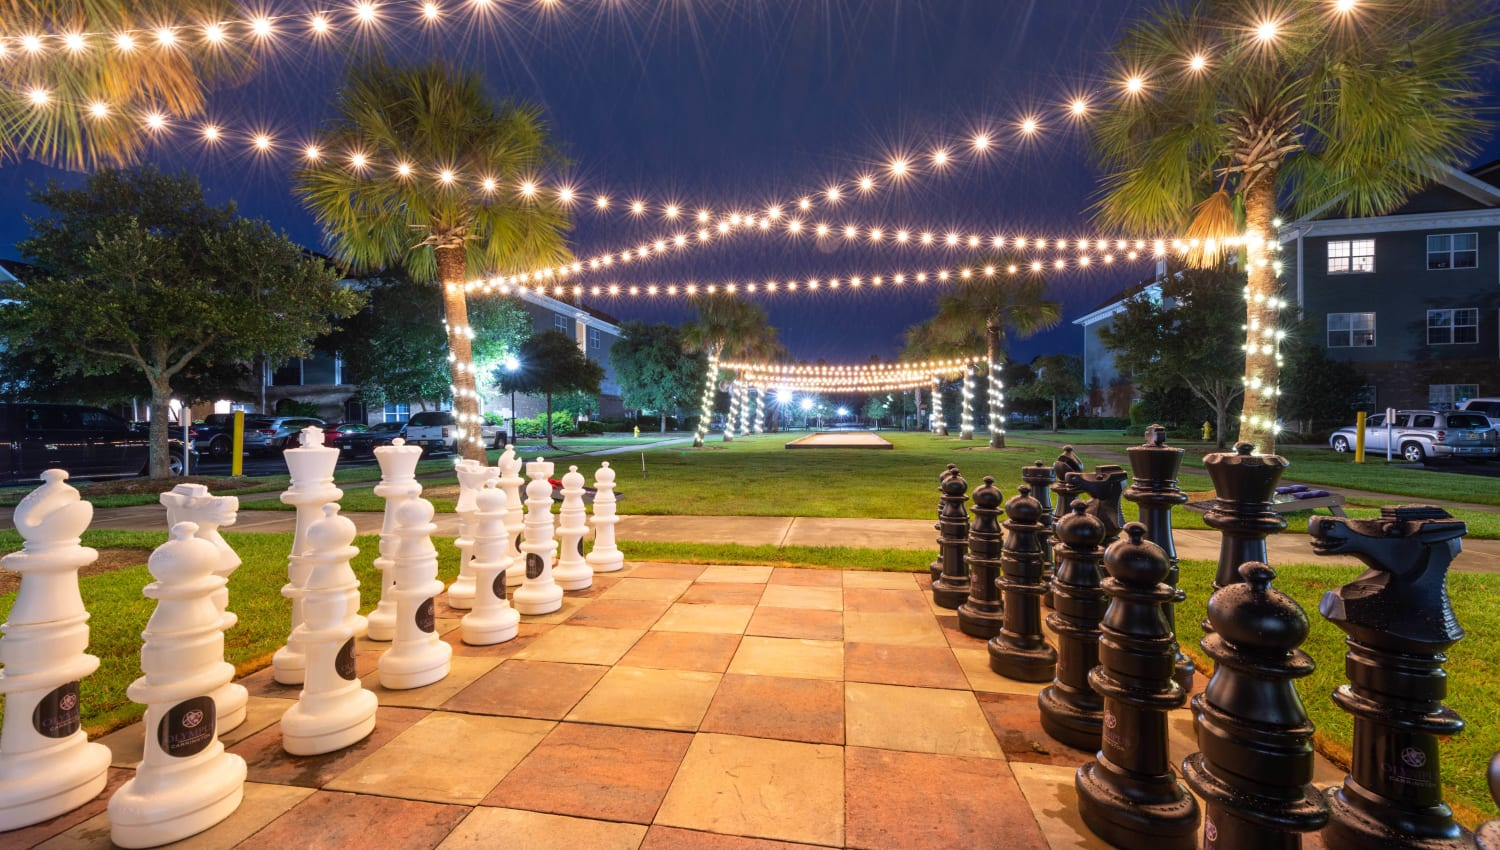 String lights above the life-size chessboard in the evening at Olympus Carrington in Pooler, Georgia